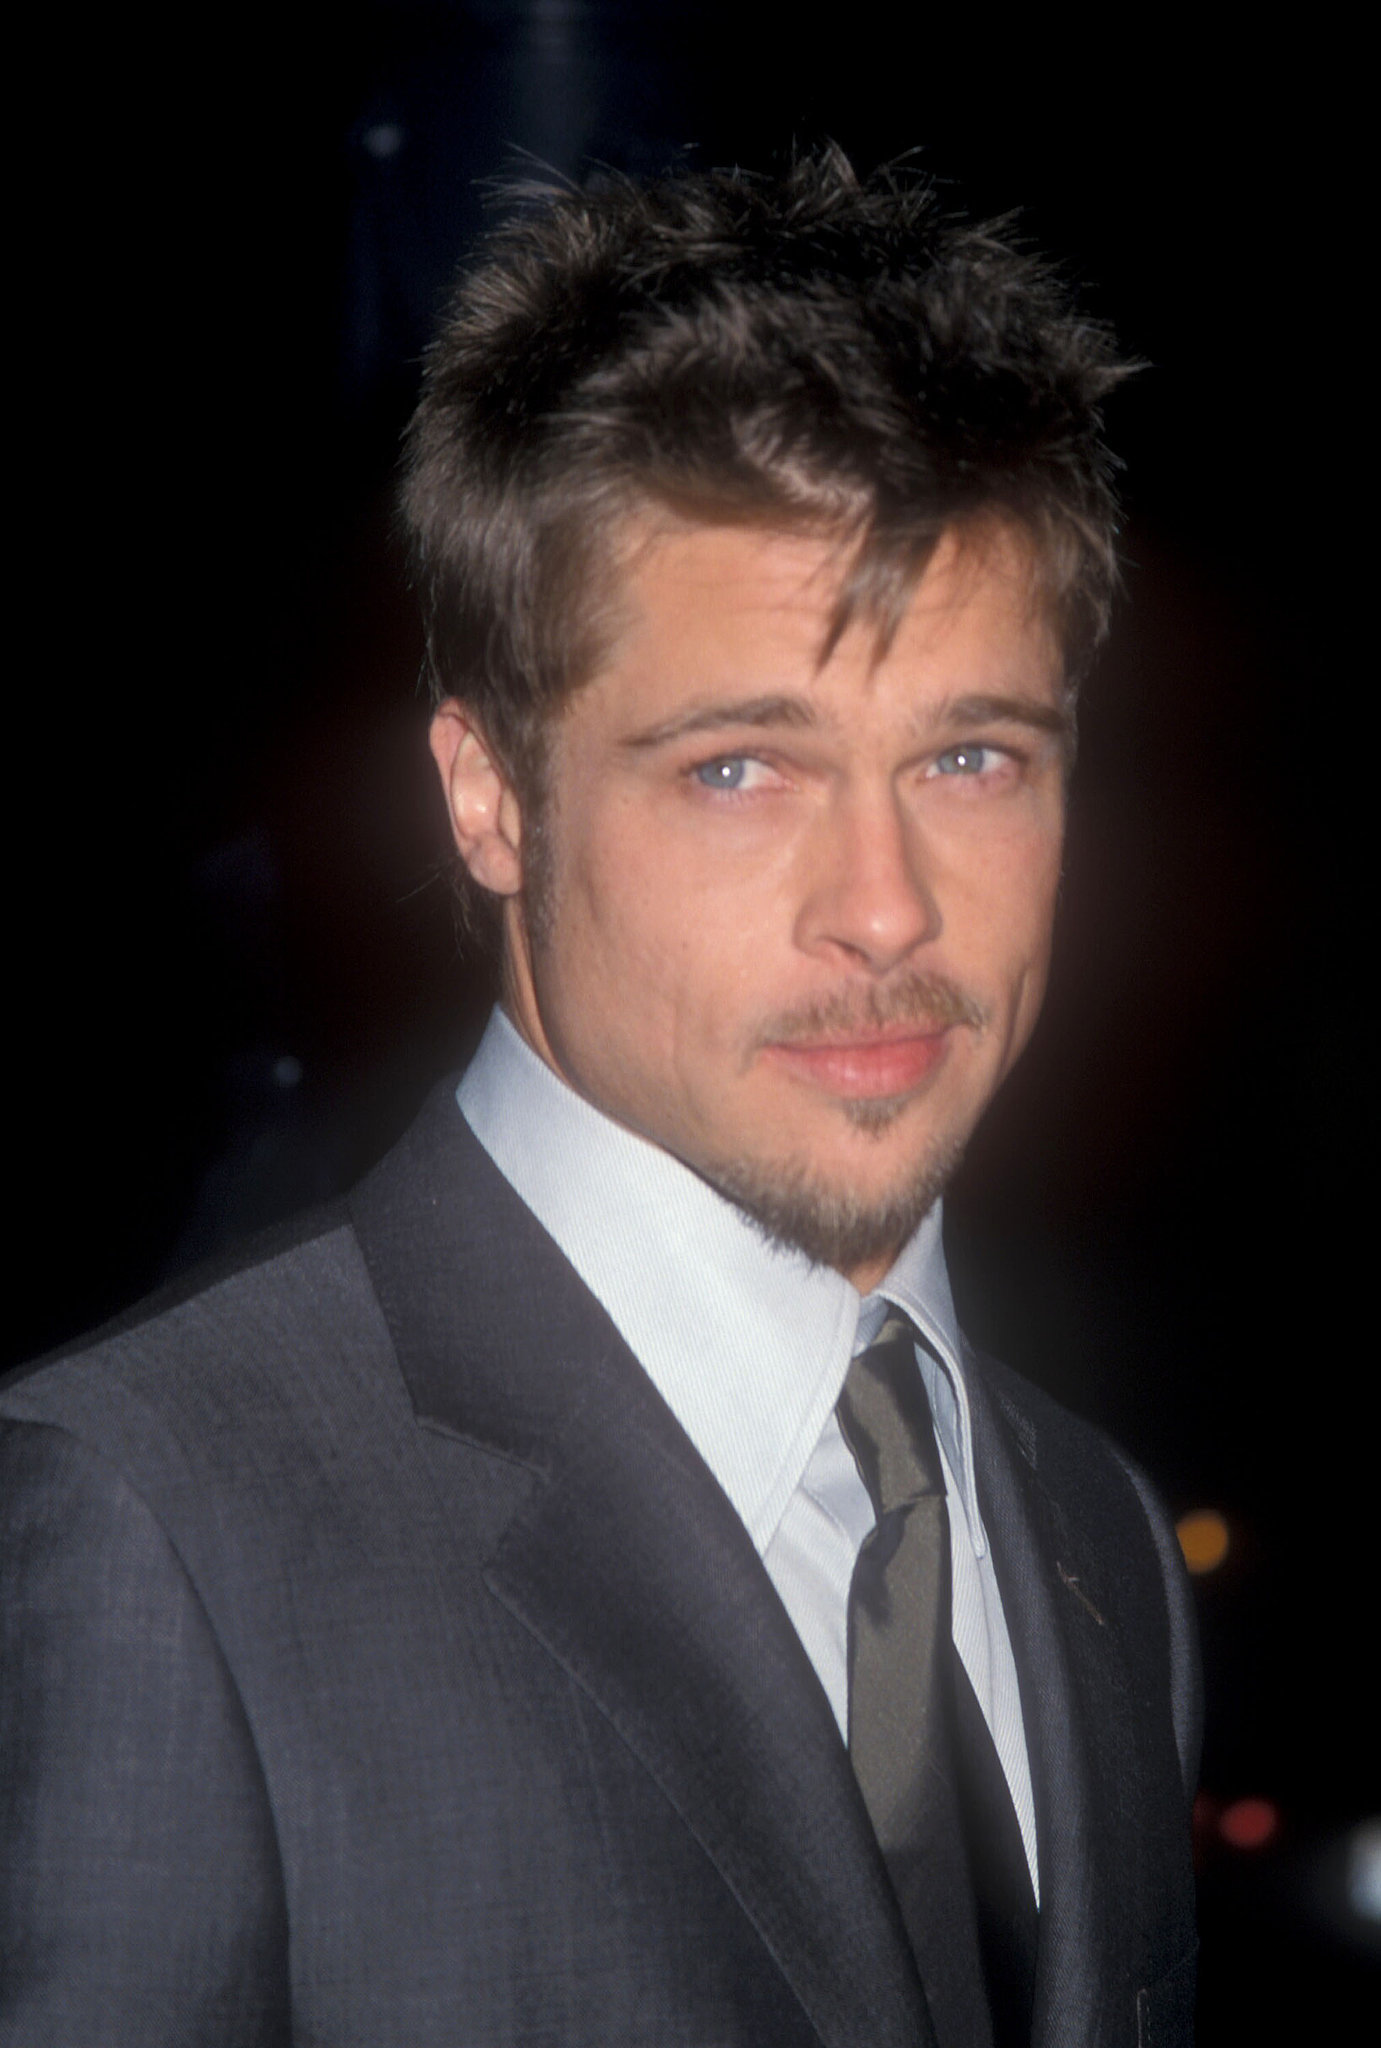 who was brad pitt dating in 1998